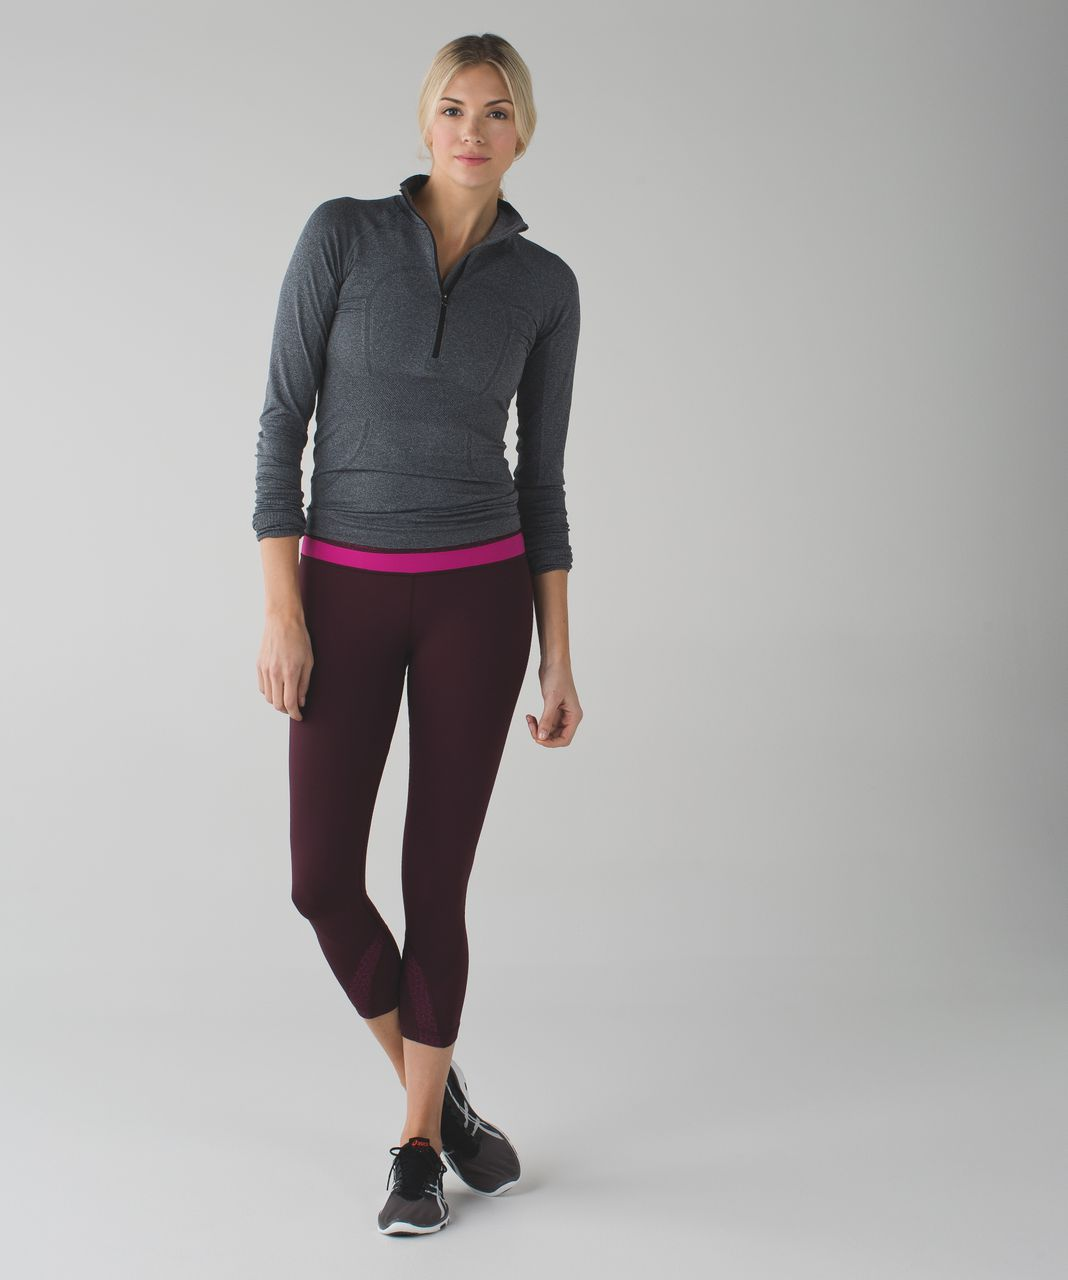 Lululemon Run:  Inspire Crop II *All Luxtreme - Bordeaux Drama / Star Pixel Raspberry Bordeaux Drama / Raspberry